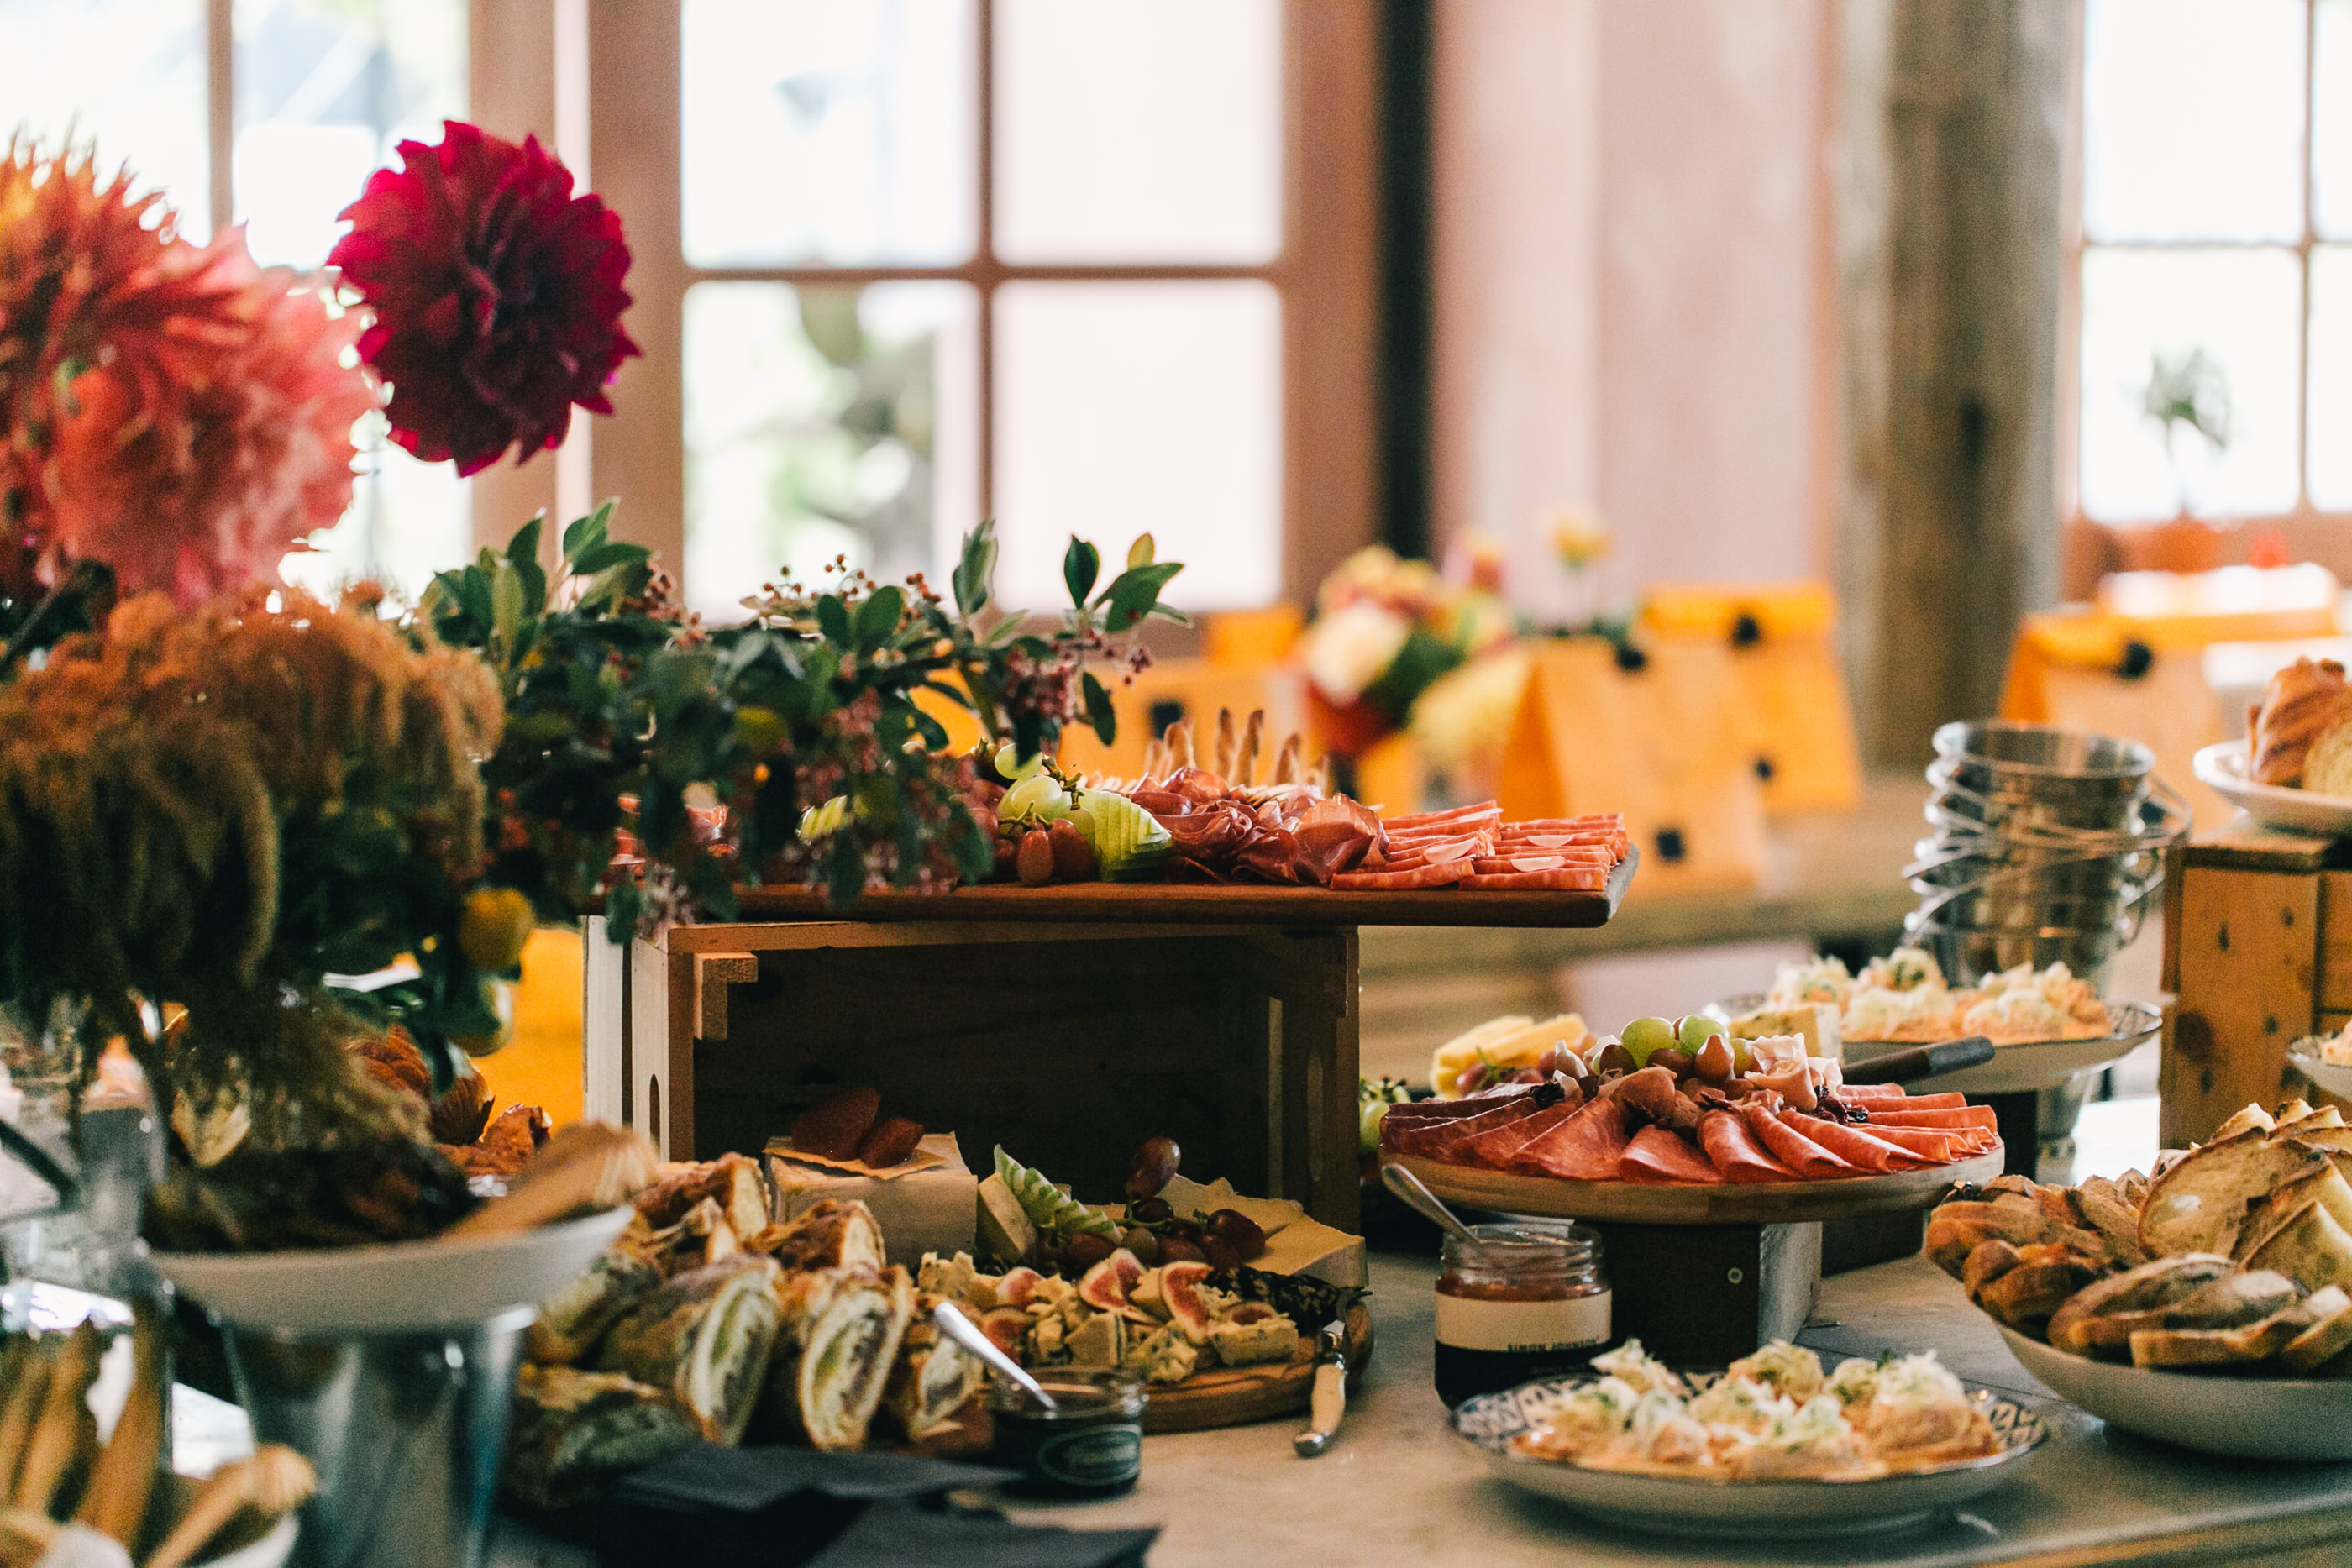 Win tickets to the Sheaf's Veuve Clicquot Champagne Brunch